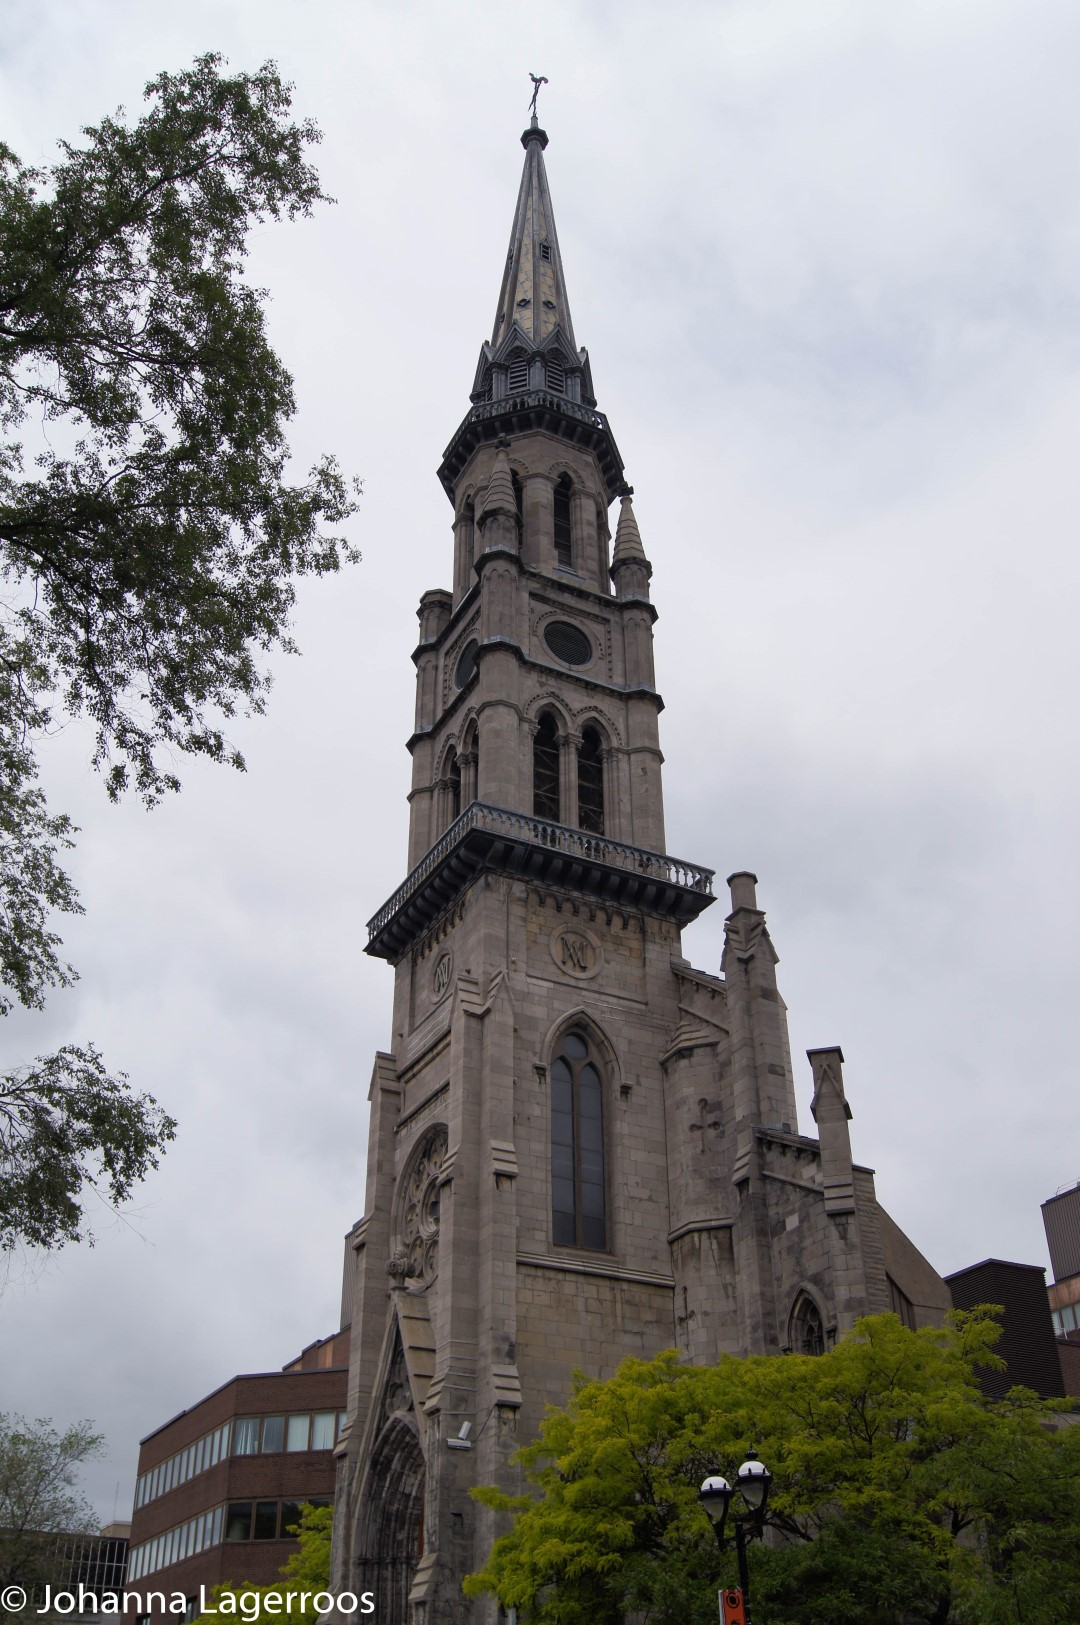 Chruch tower